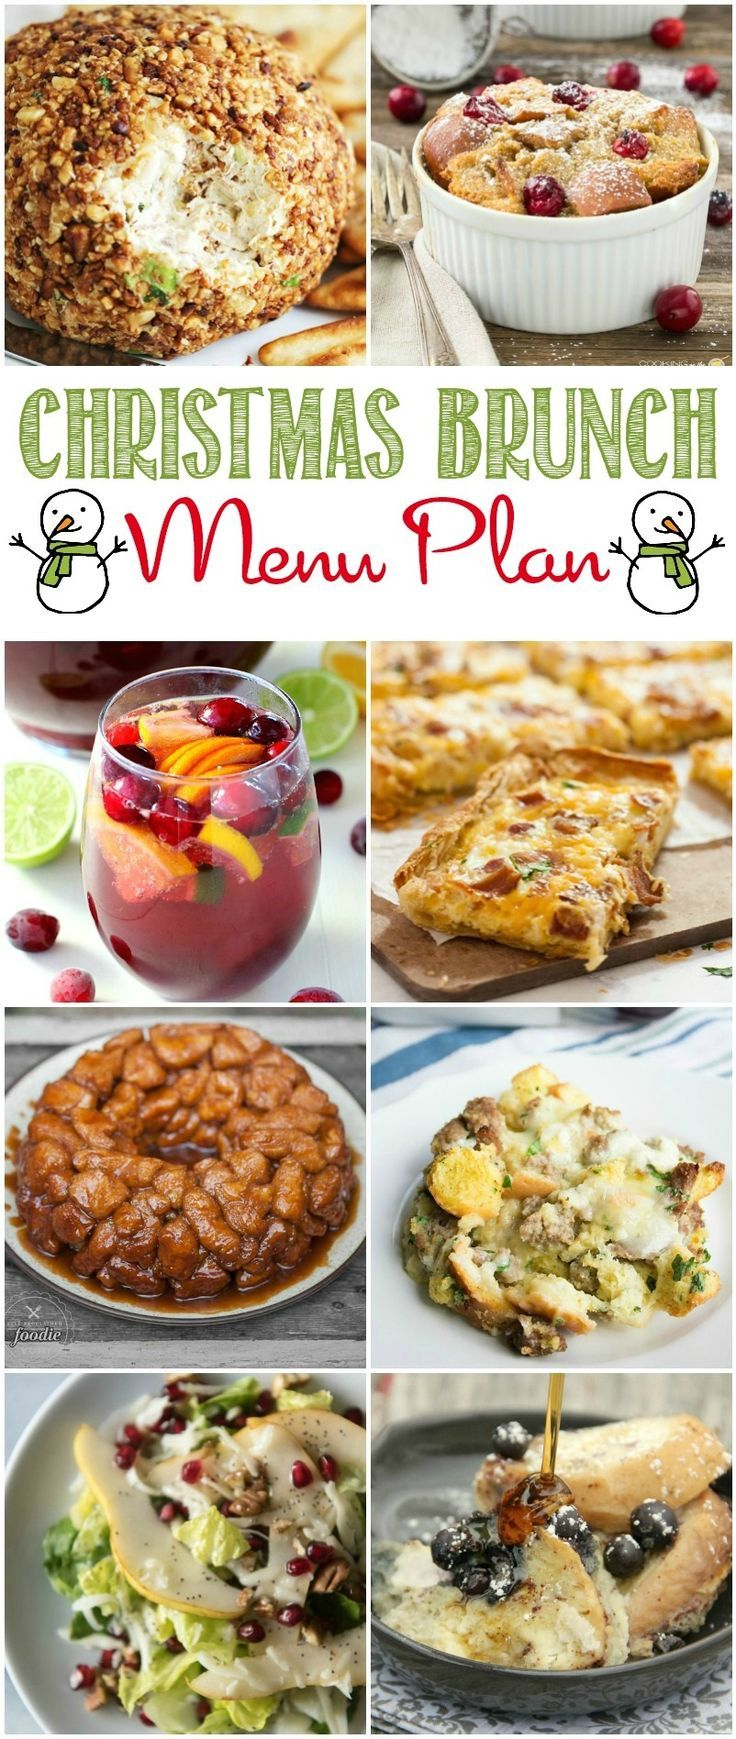 my christmas brunch menu plan will make planning for a big crowd